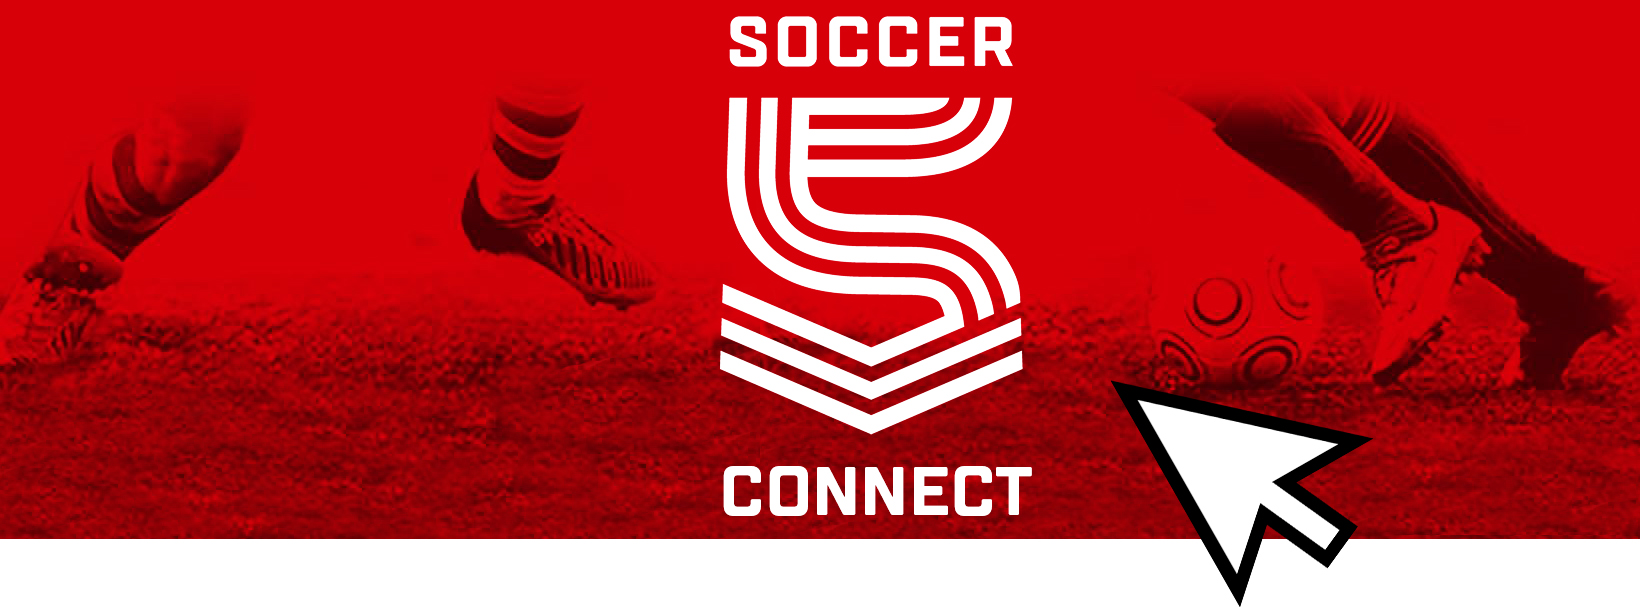 Soccer 5 connect